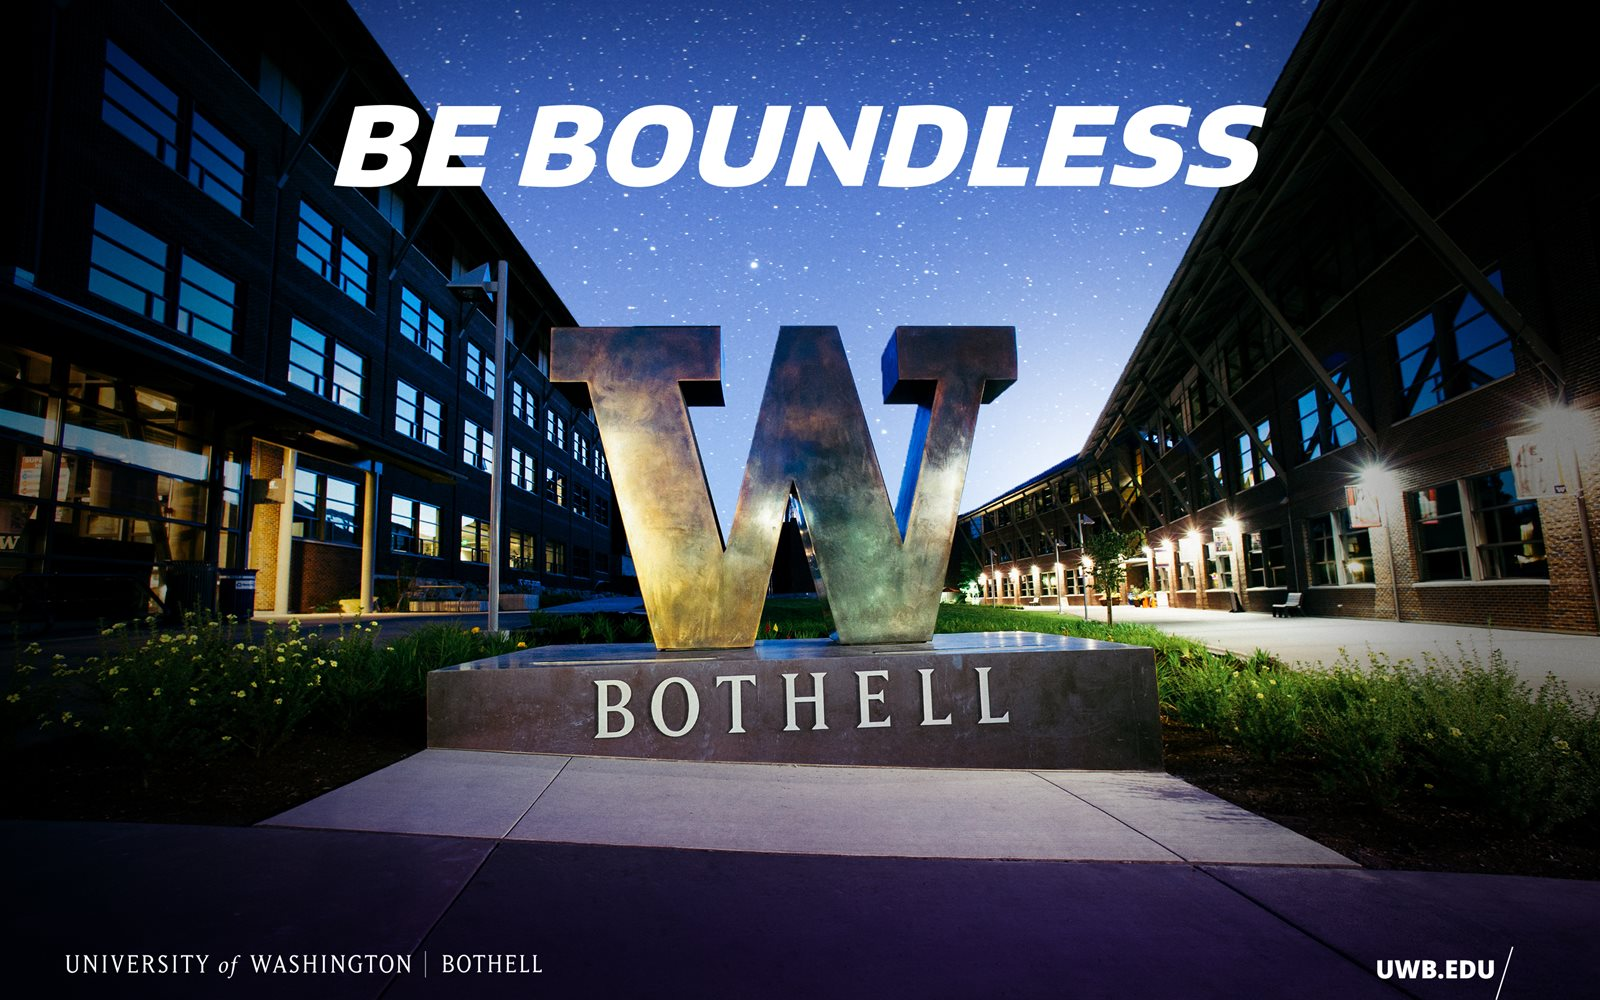 Wallpapers - UW Bothell brand - UW Bothell